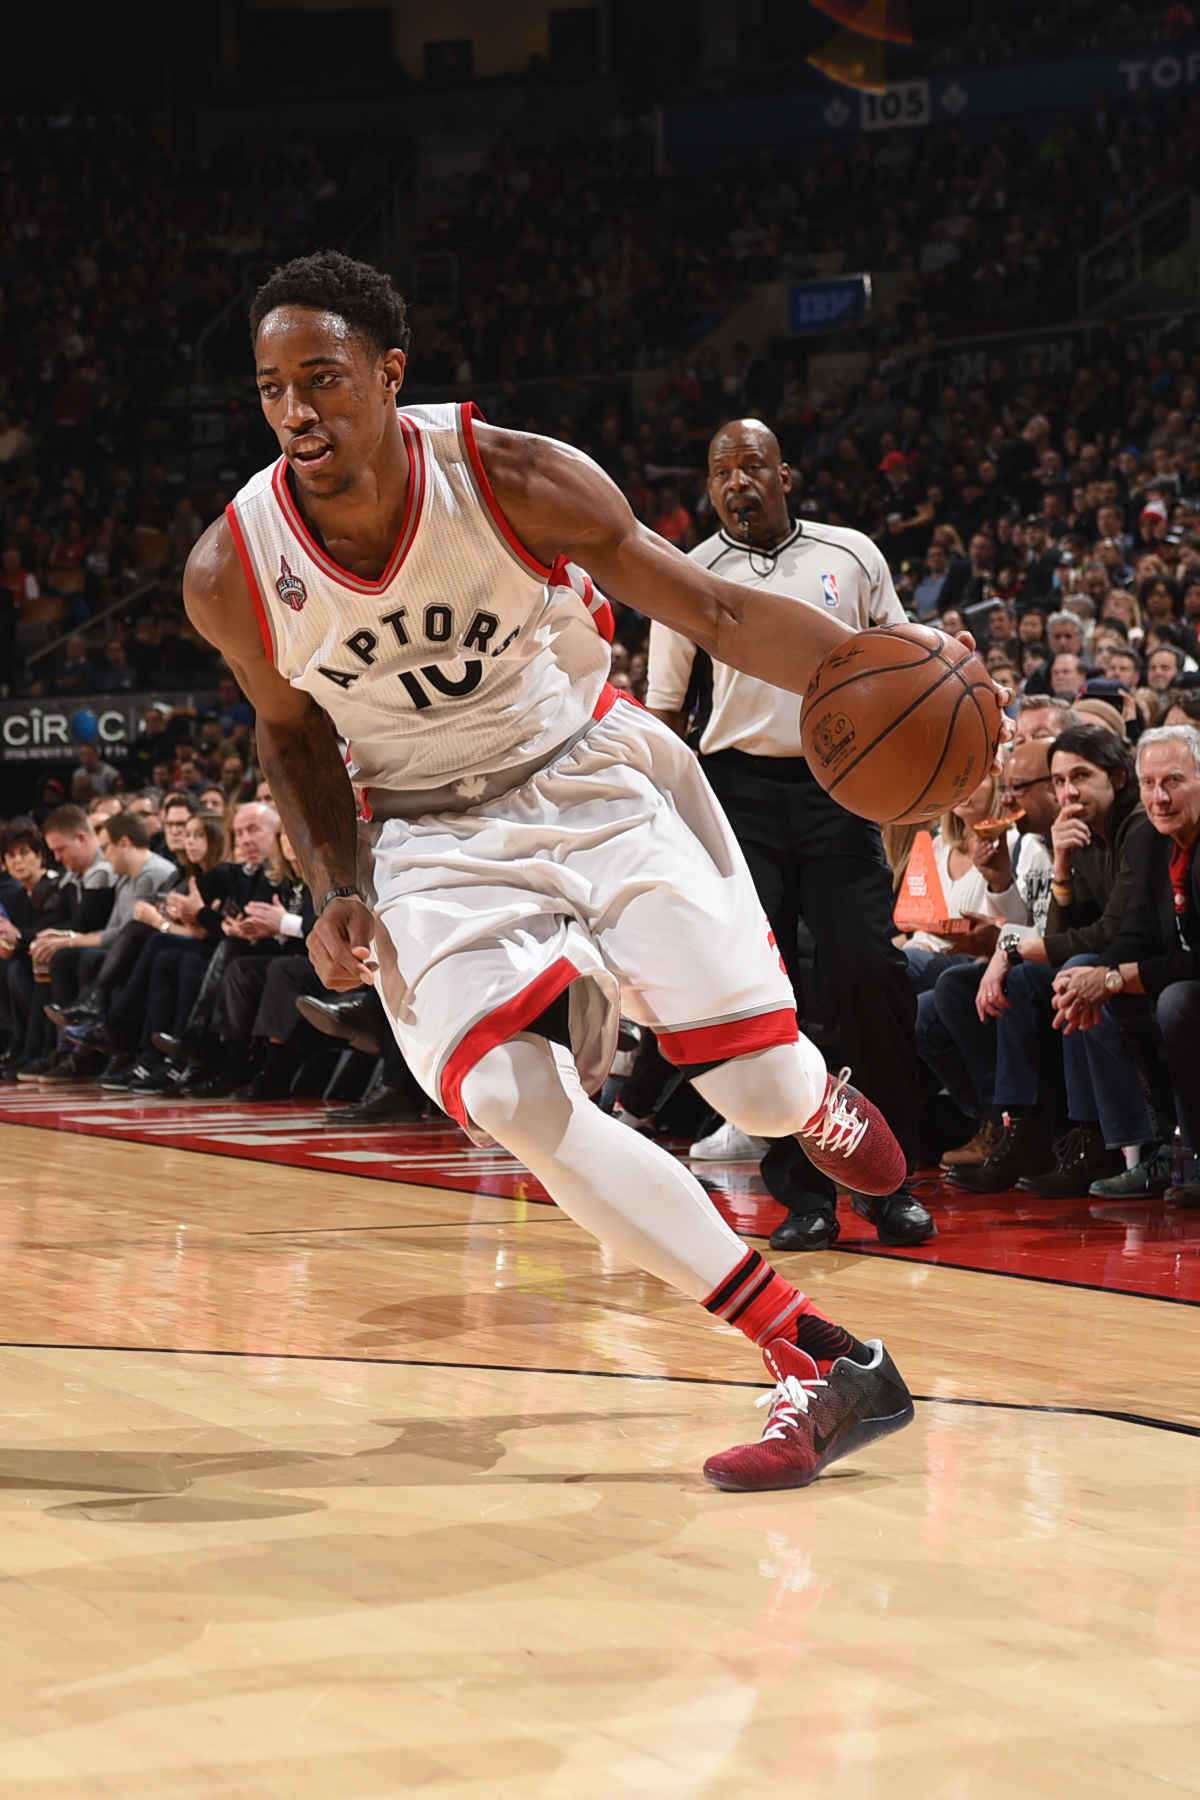 TORONTO, CANADA - FEBRUARY 21:  DeMar DeRozan #10 of the Toronto Raptors drives to the basket against the Memphis Grizzlies on February 21, 2016 at the Air Canada Centre in Toronto, Ontario, Canada.  (Photo by Ron Turenne/NBAE via Getty Images)